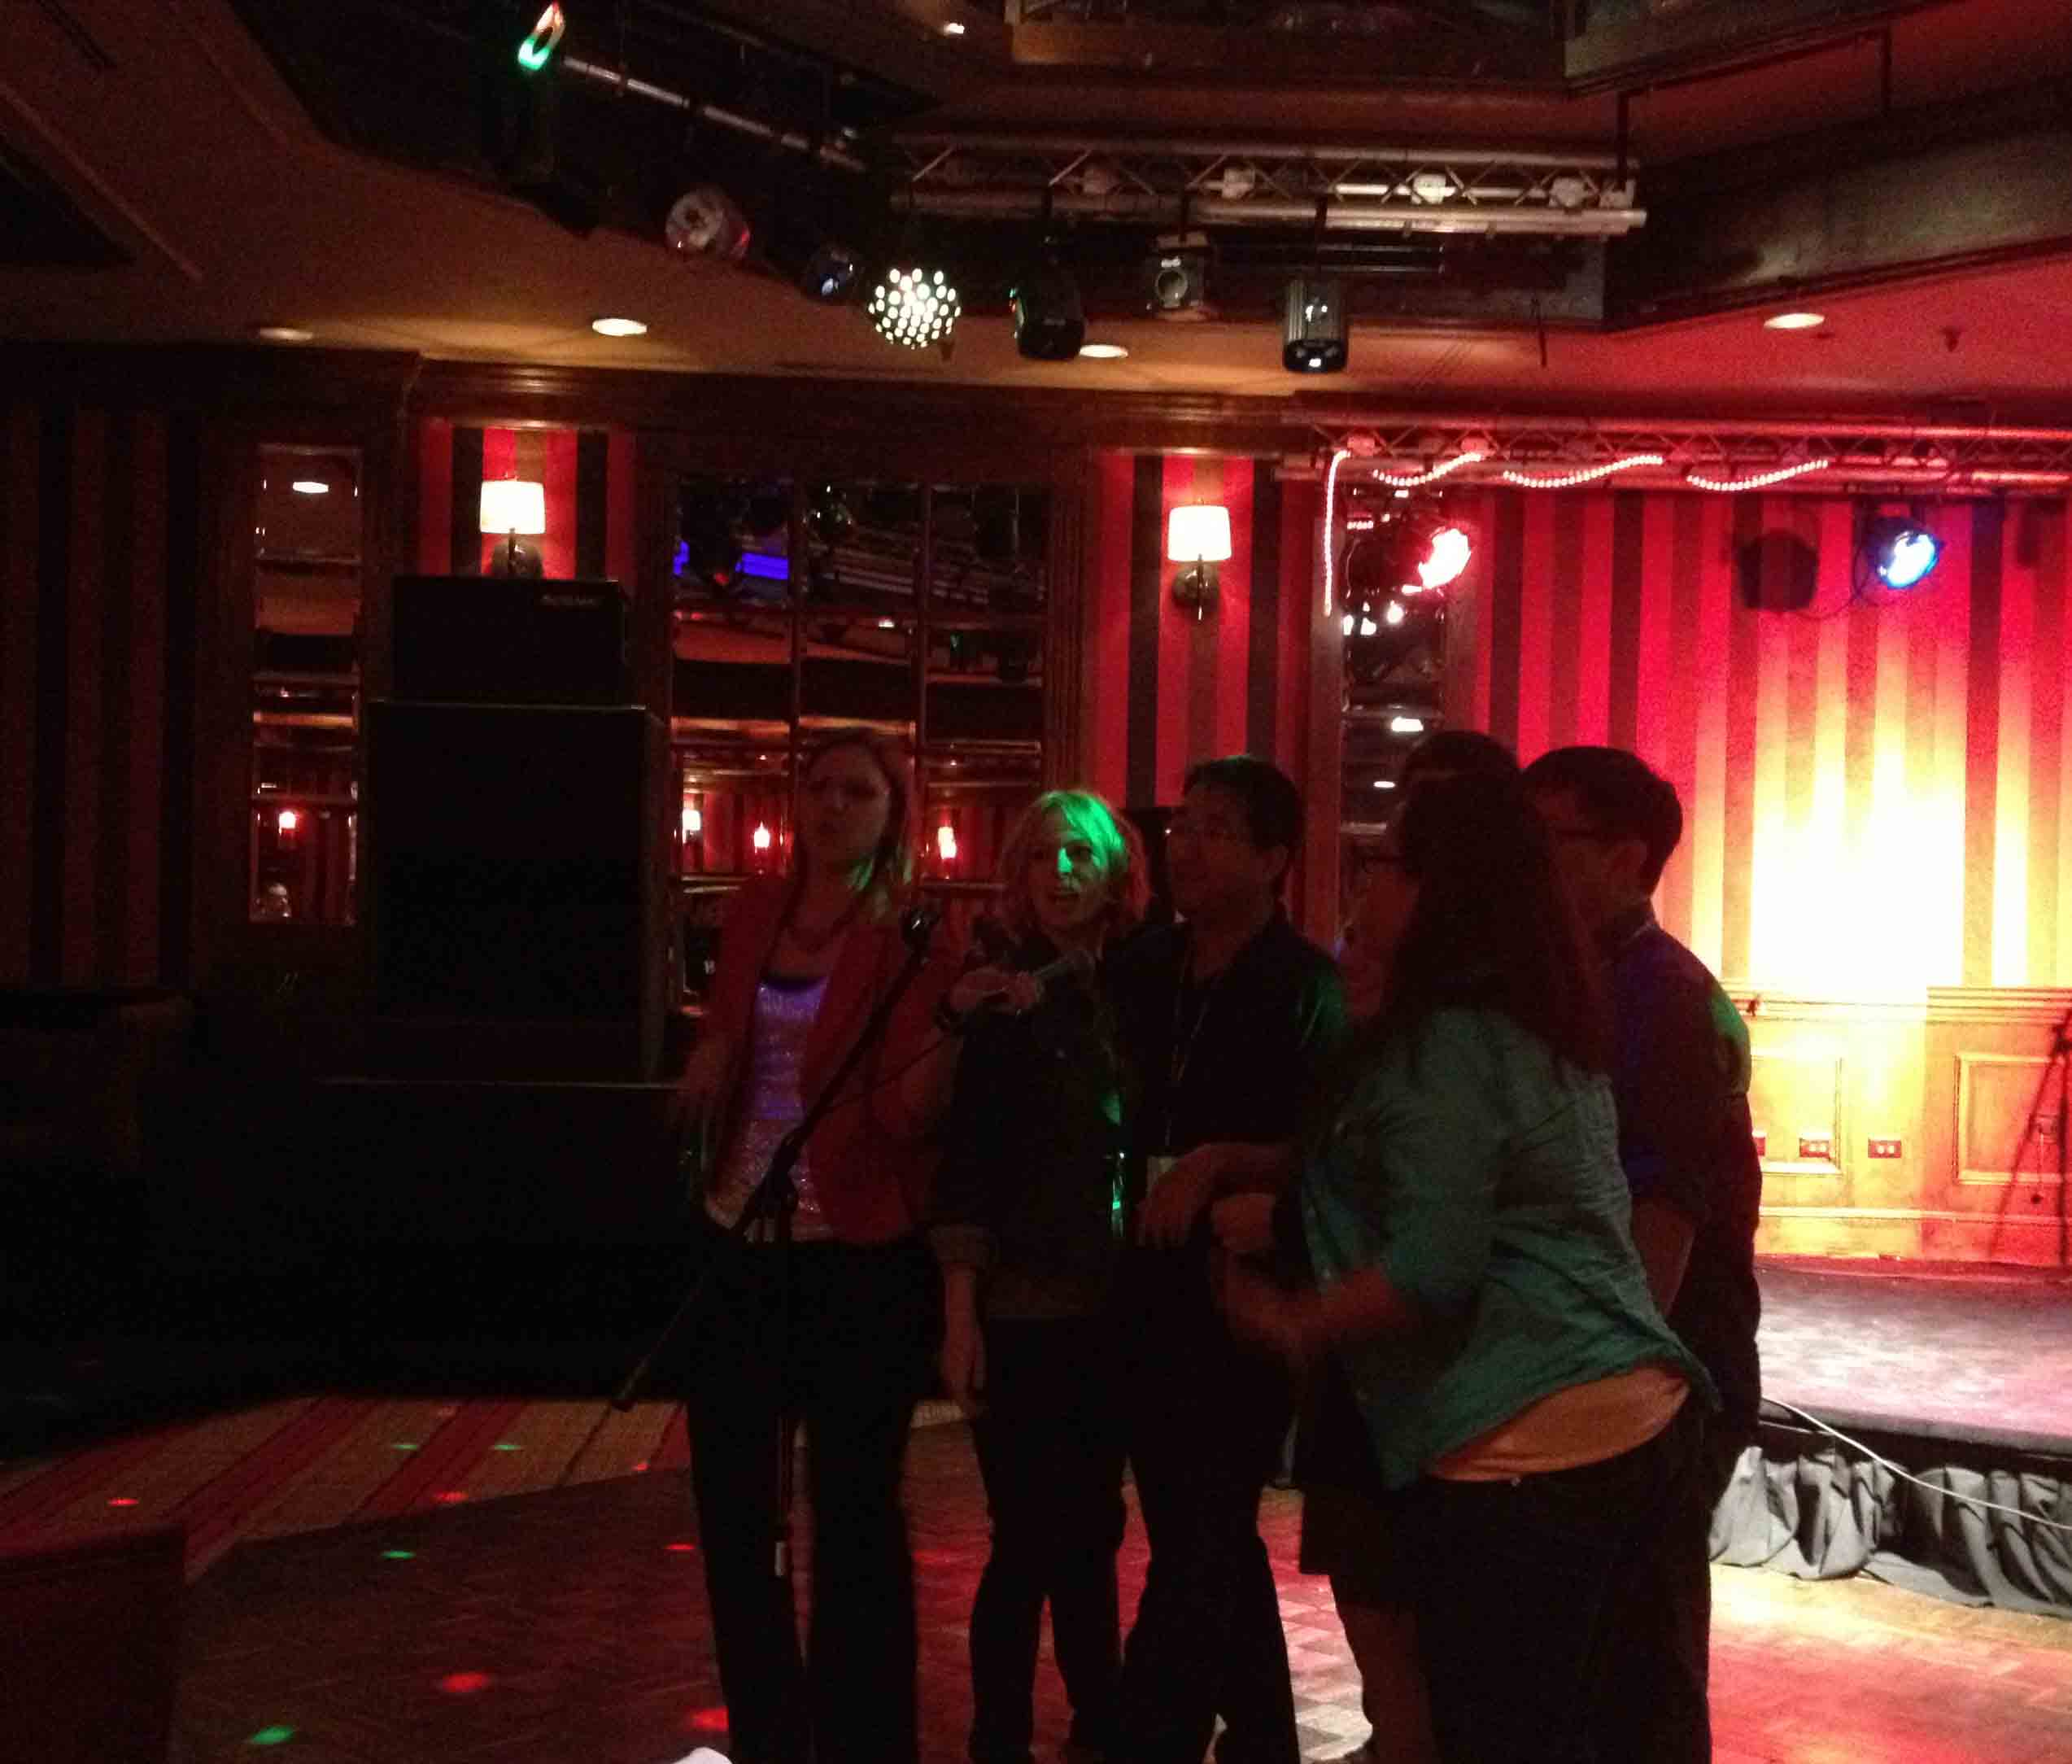 Six people singing at karaoke!